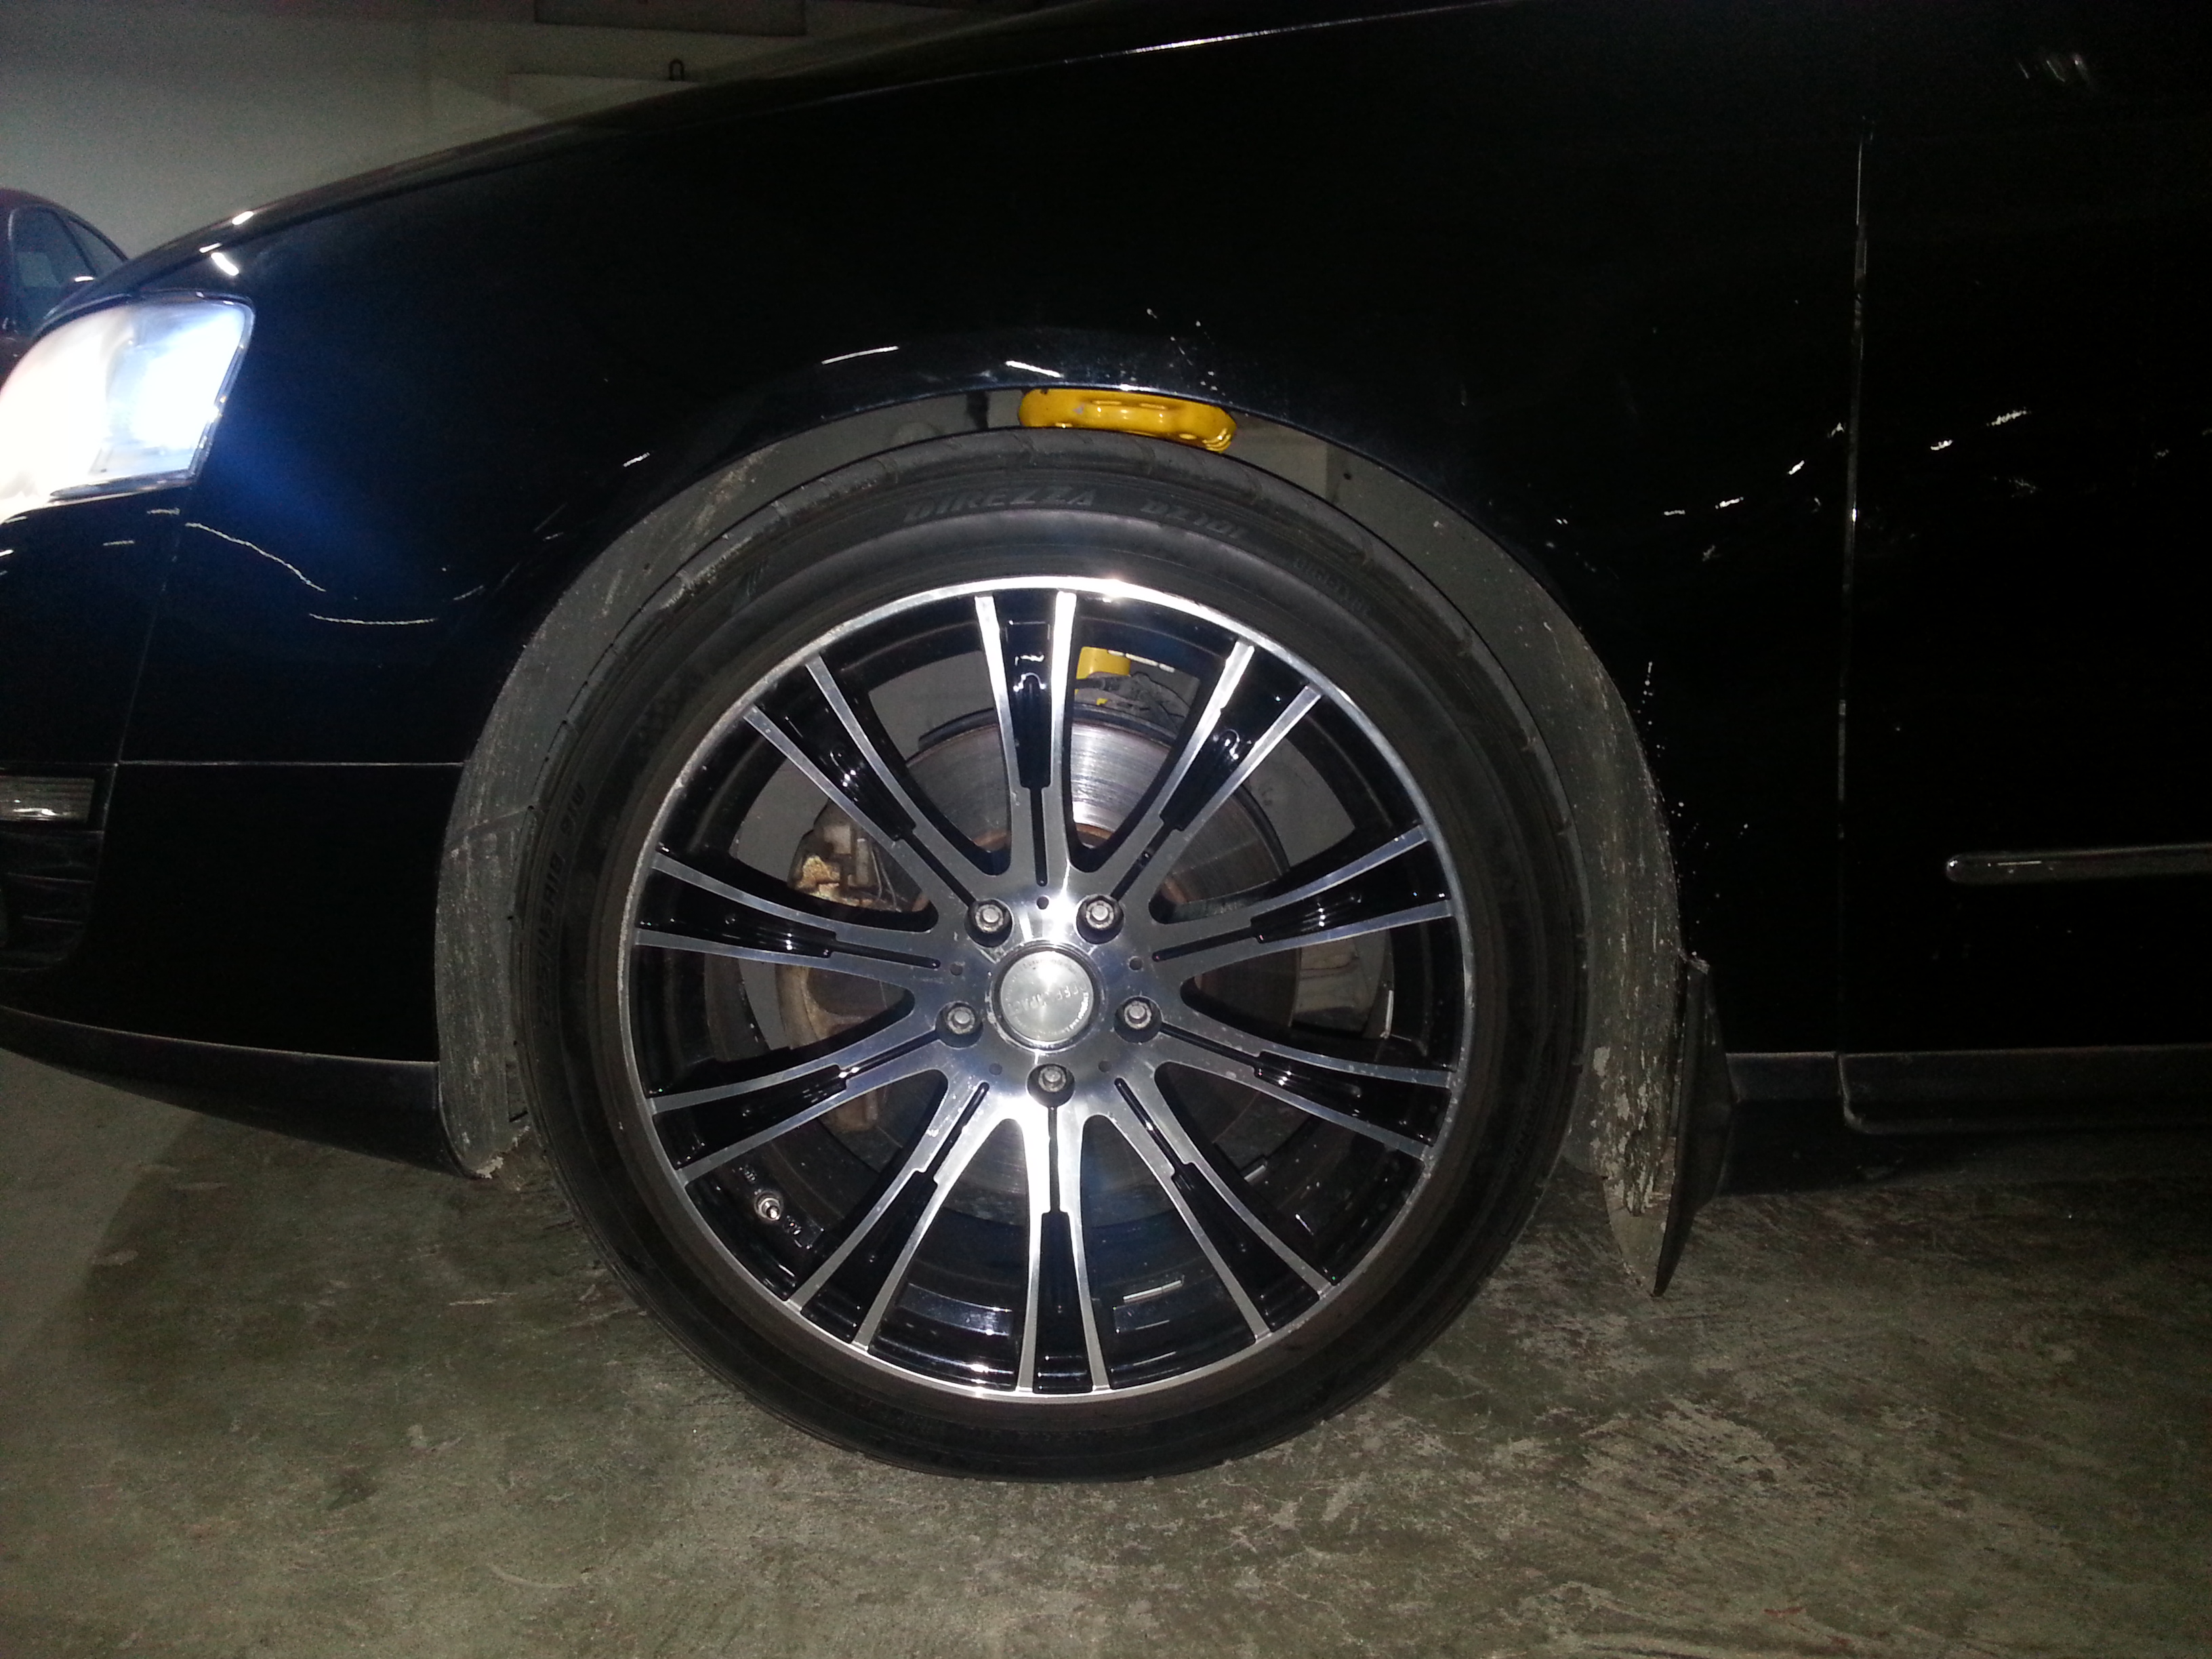 Lowered on Bilstein B12 Pro-kit with 18in Wheel - 19021935